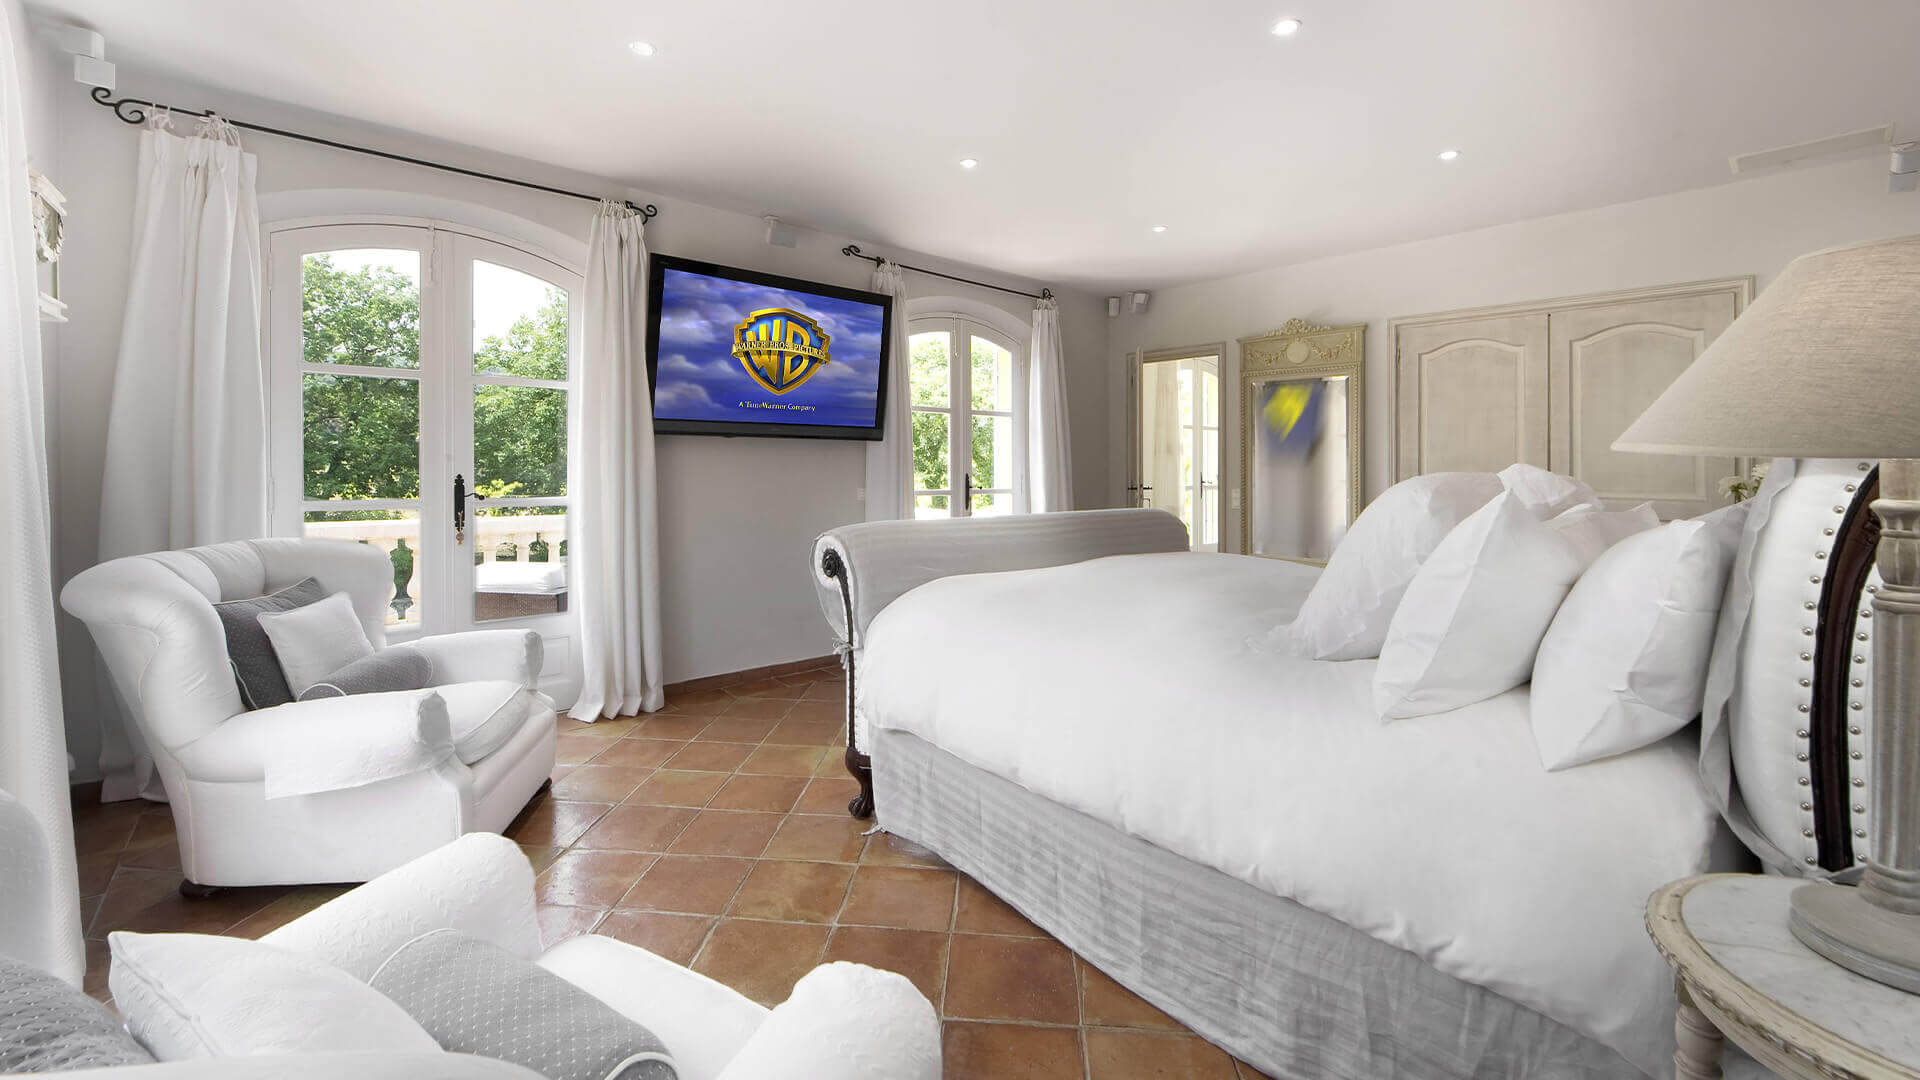 Saint Tropez Villa white bedroom with many pillows